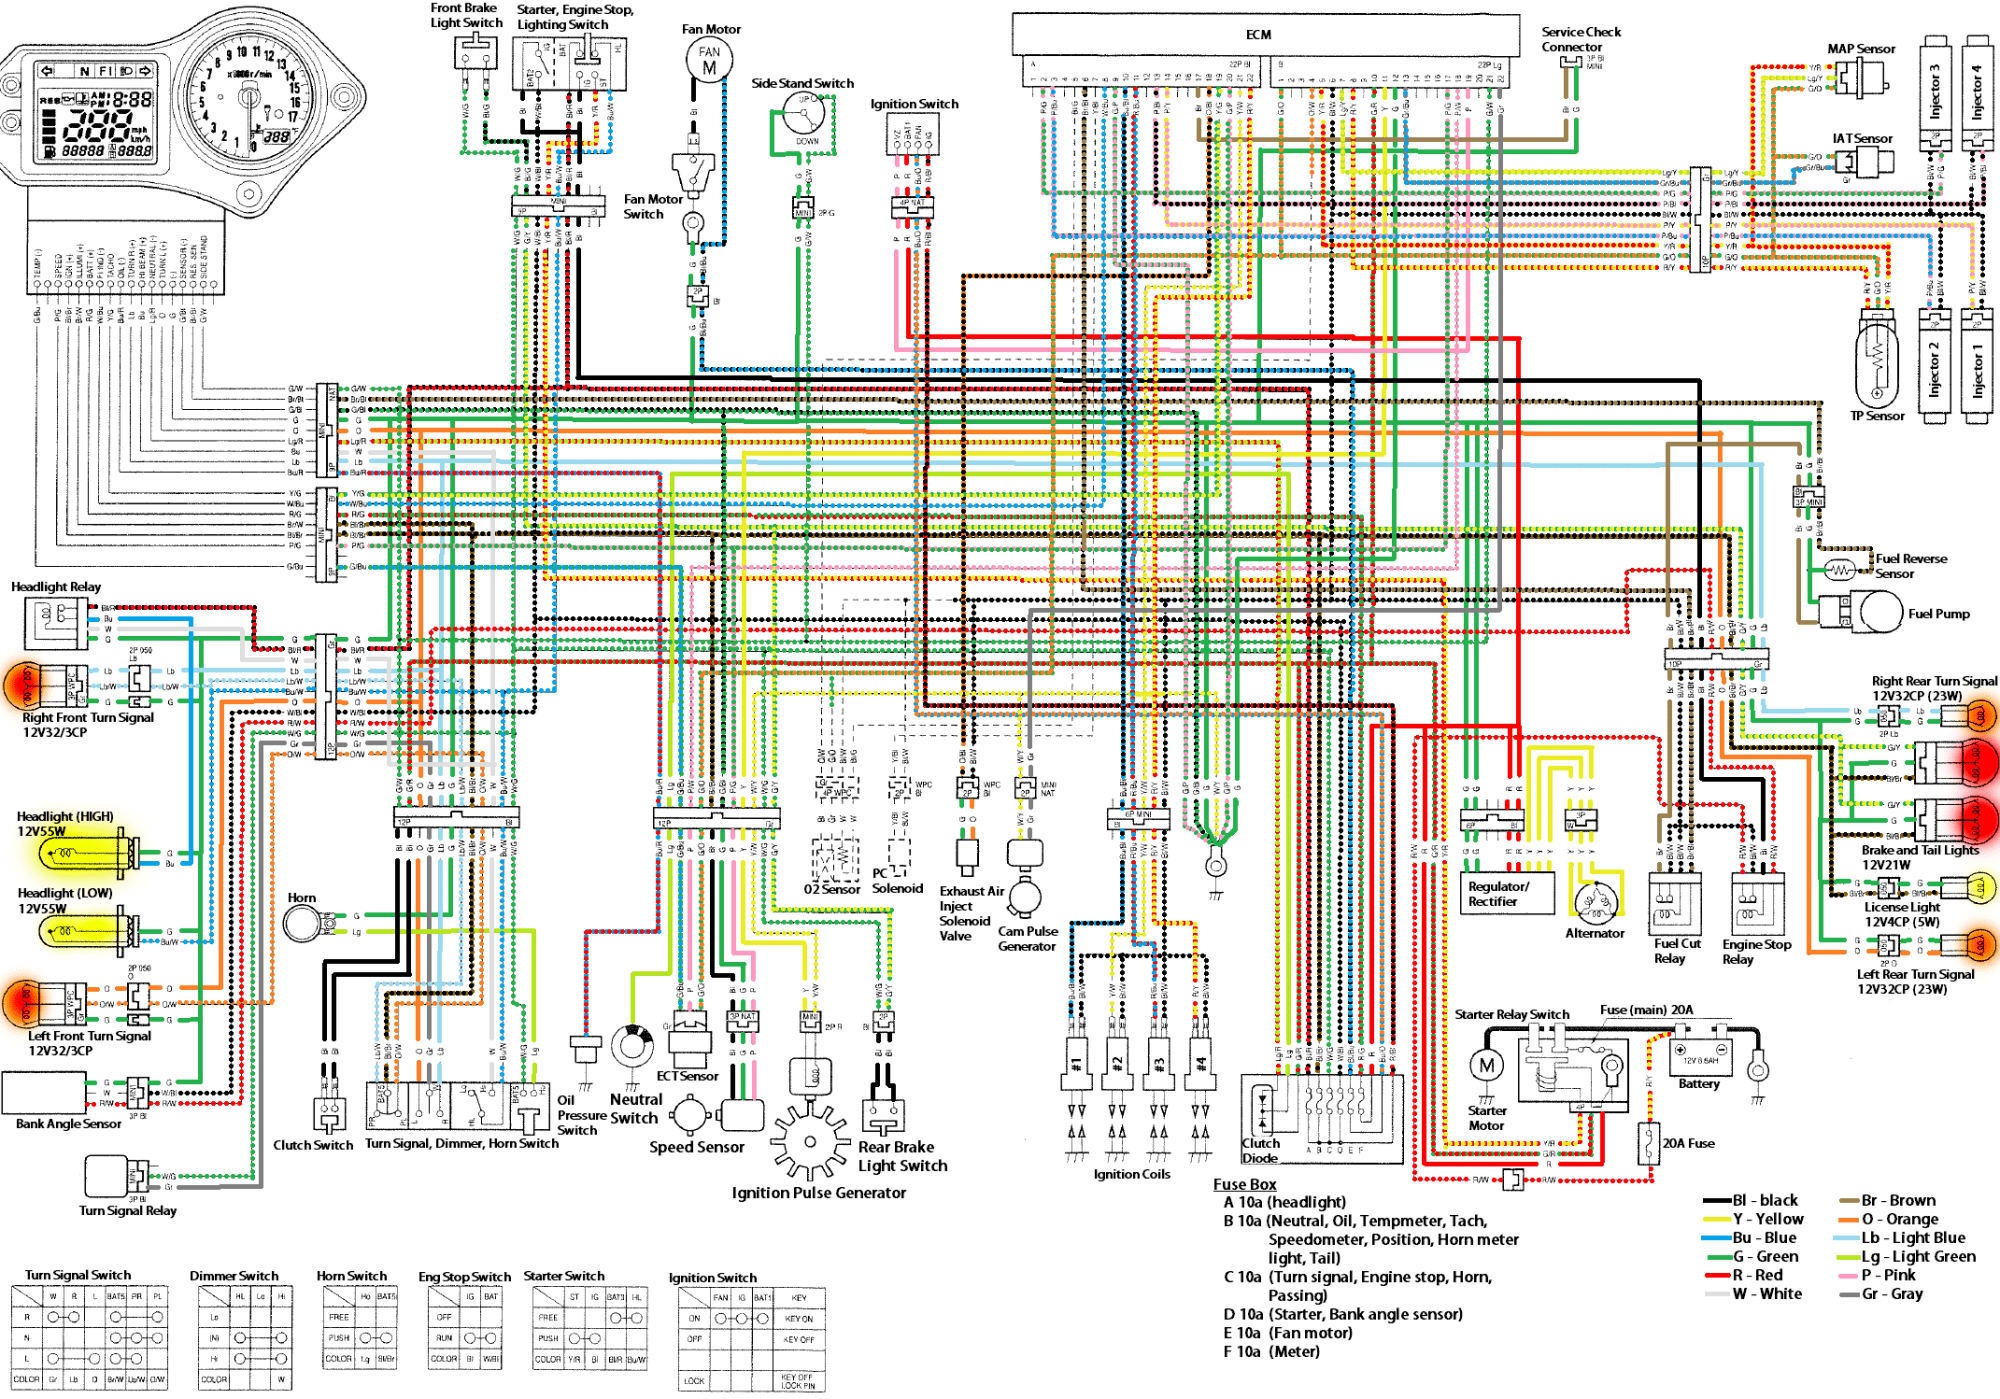 hight resolution of wiring harness diagram 05 honda cbr1000rr wiring diagram experthow to convert your jap cbr 1000rr to